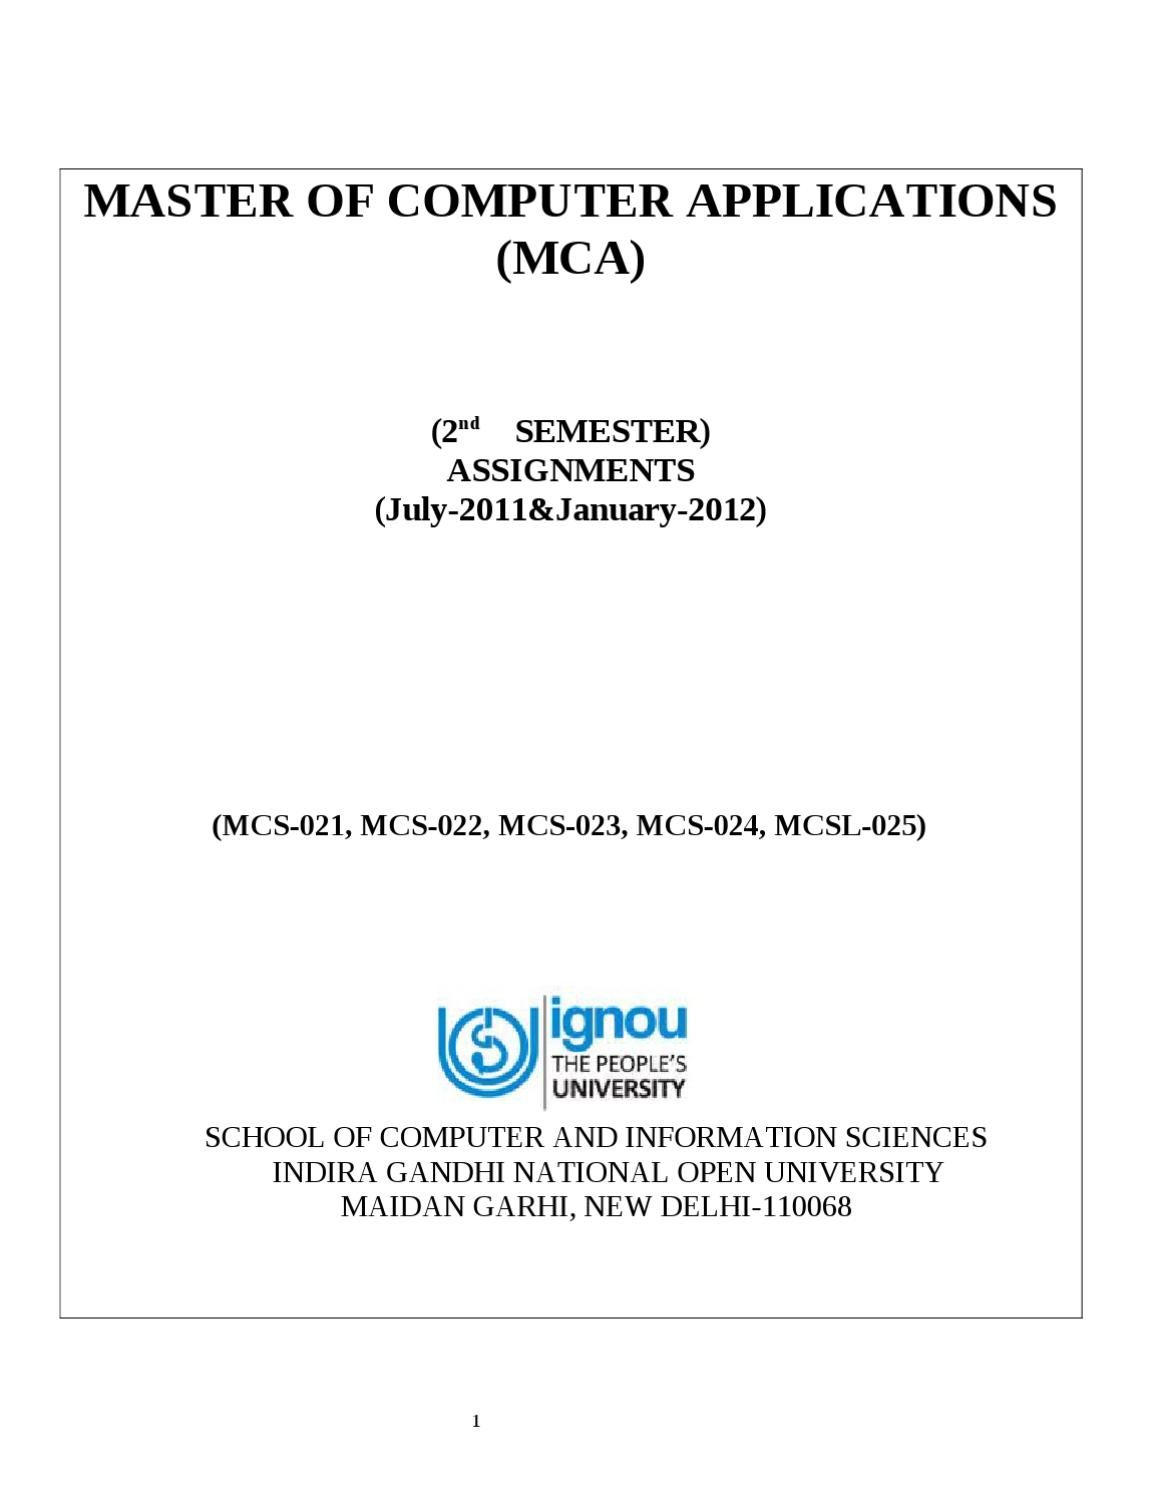 ignou assignment cover page design cover page ignou project scribd